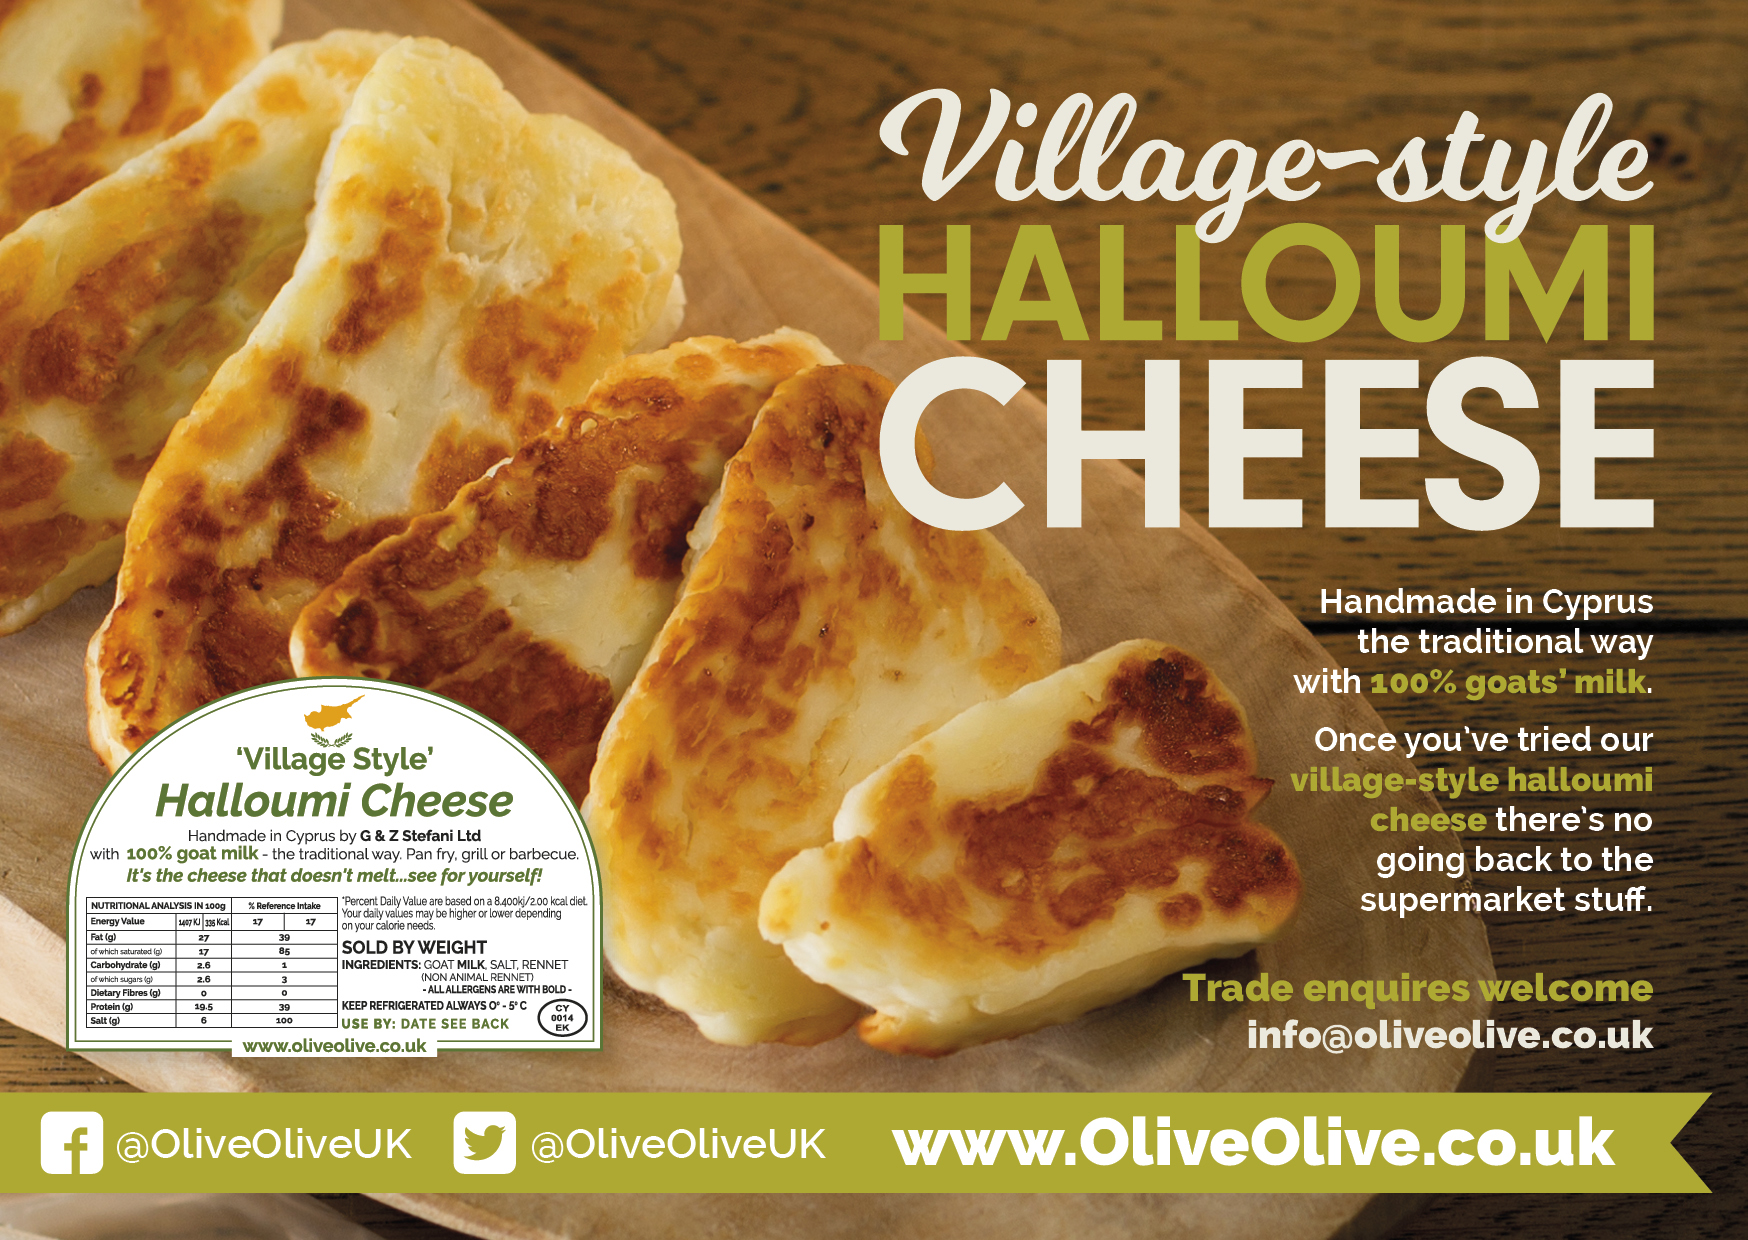 Halloumi Cheese side of Flyer